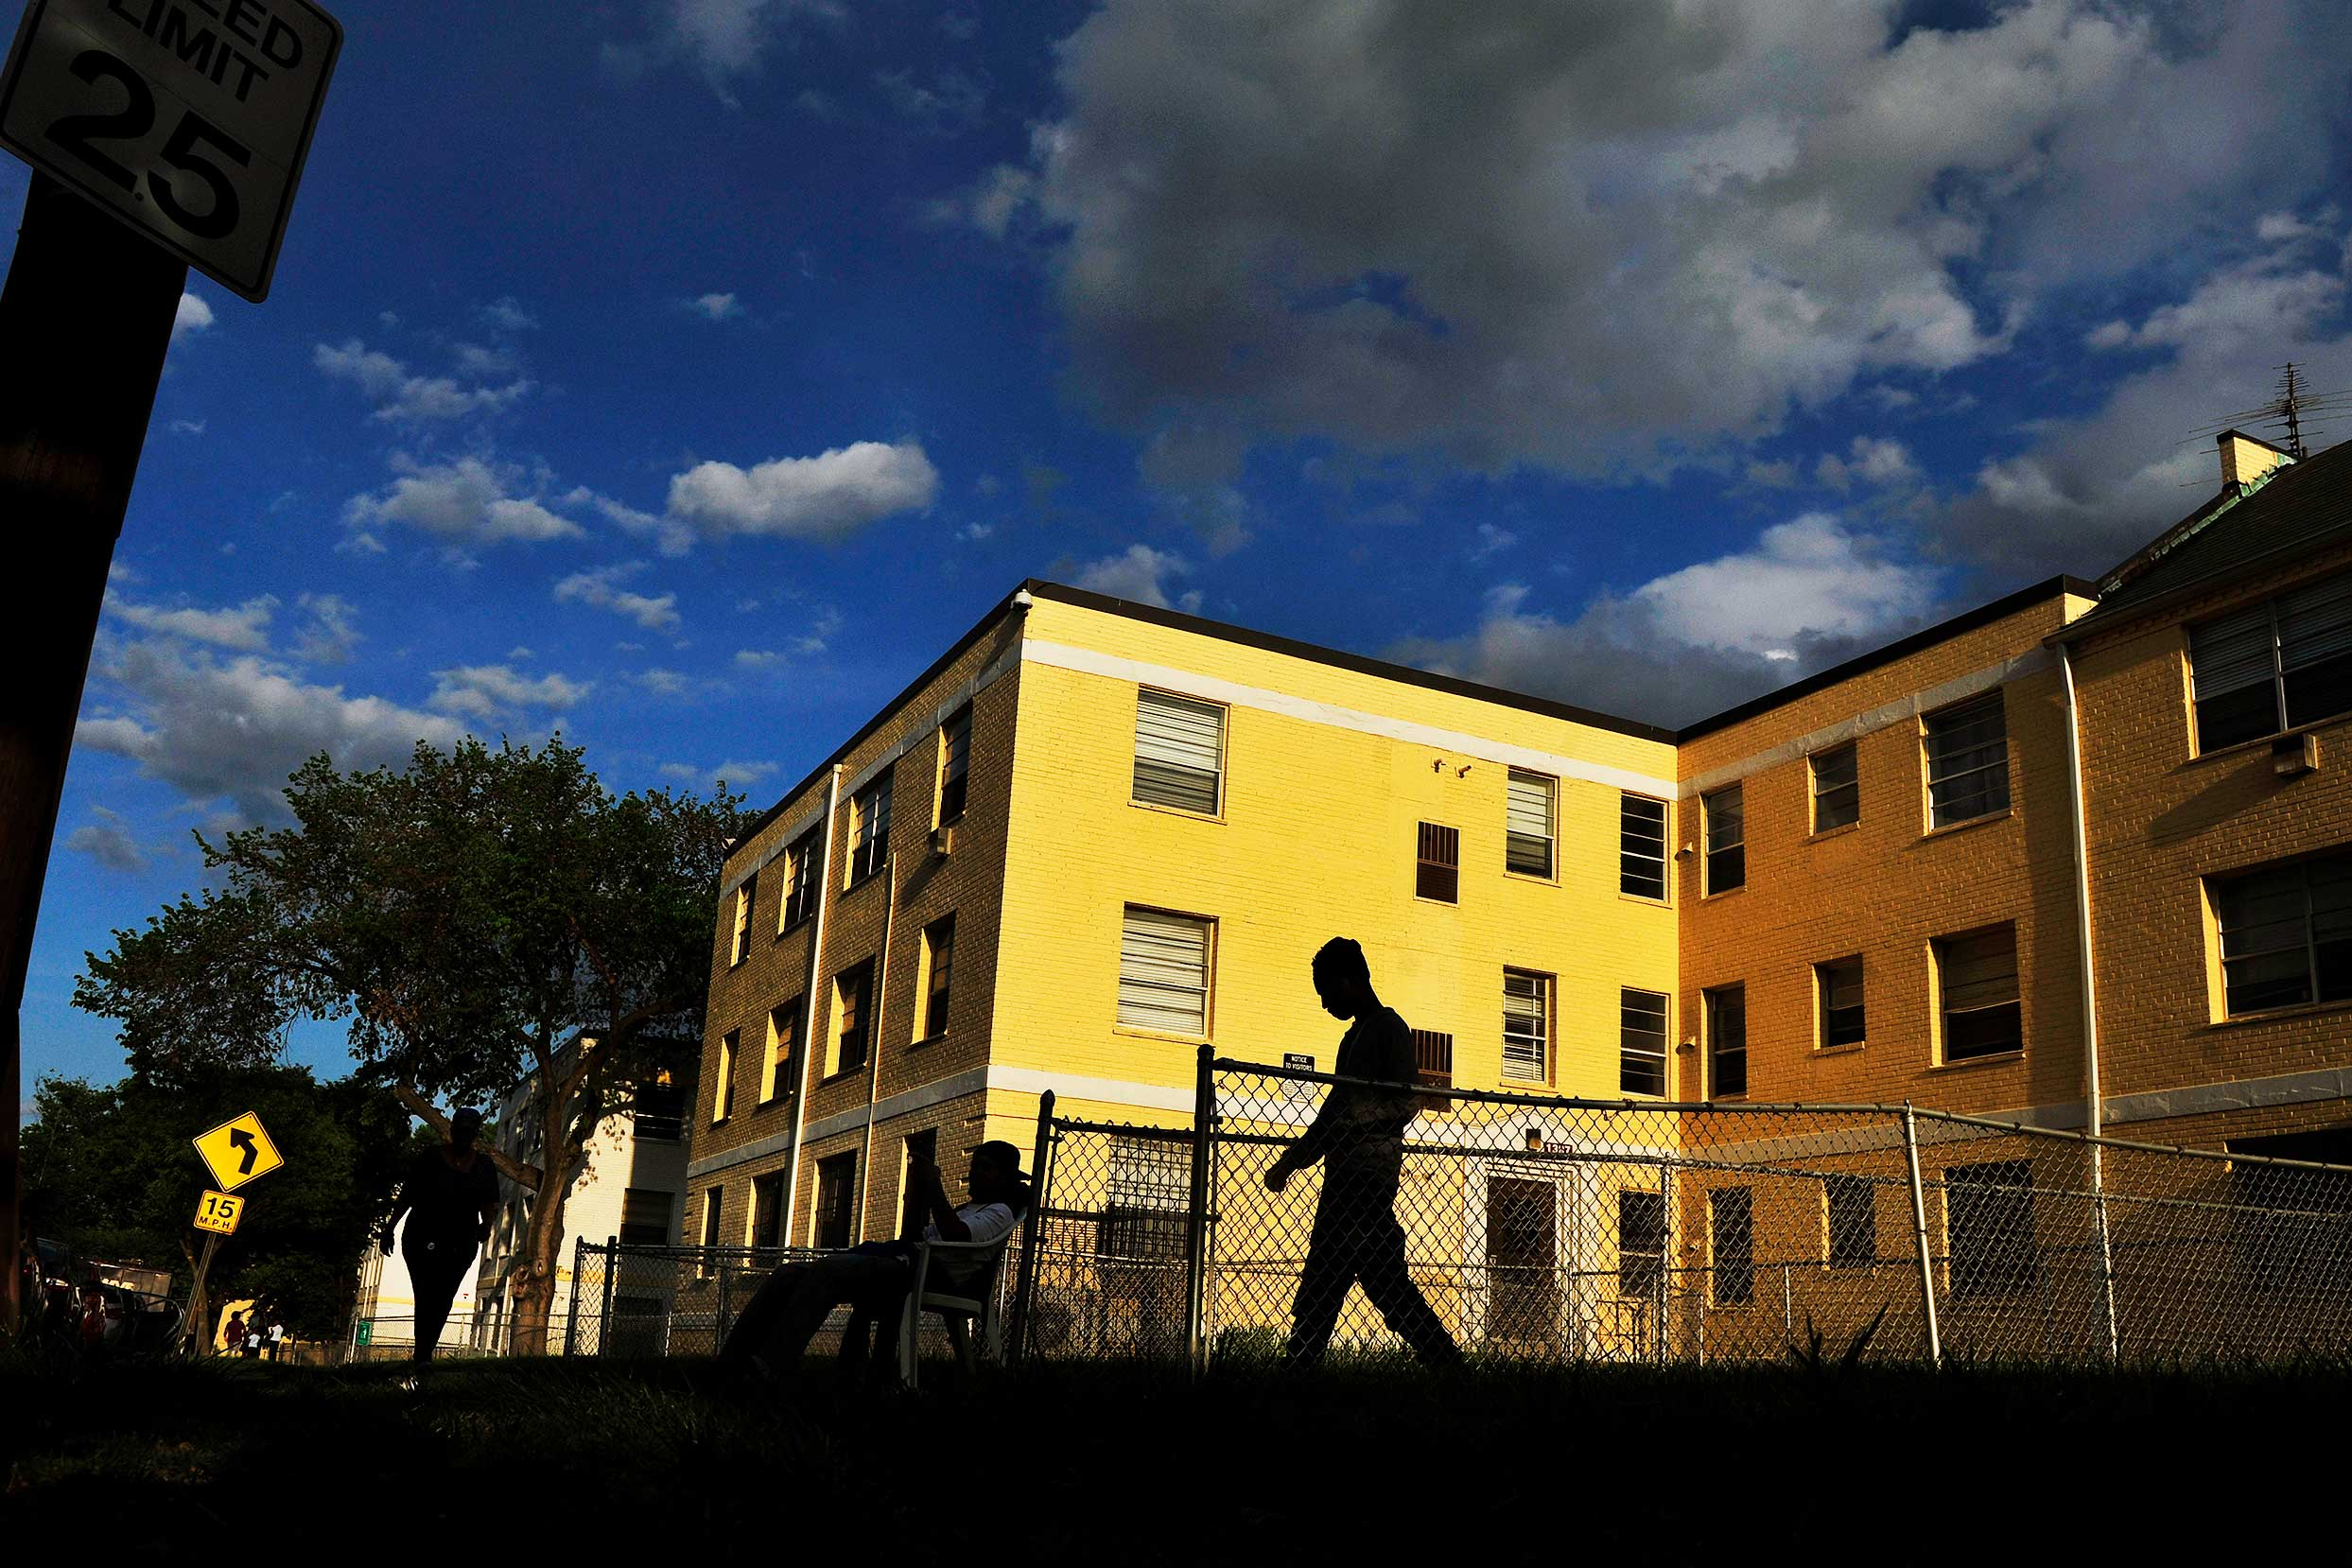 Vouchers can help the poor find homes. But landlords often won't accept them.